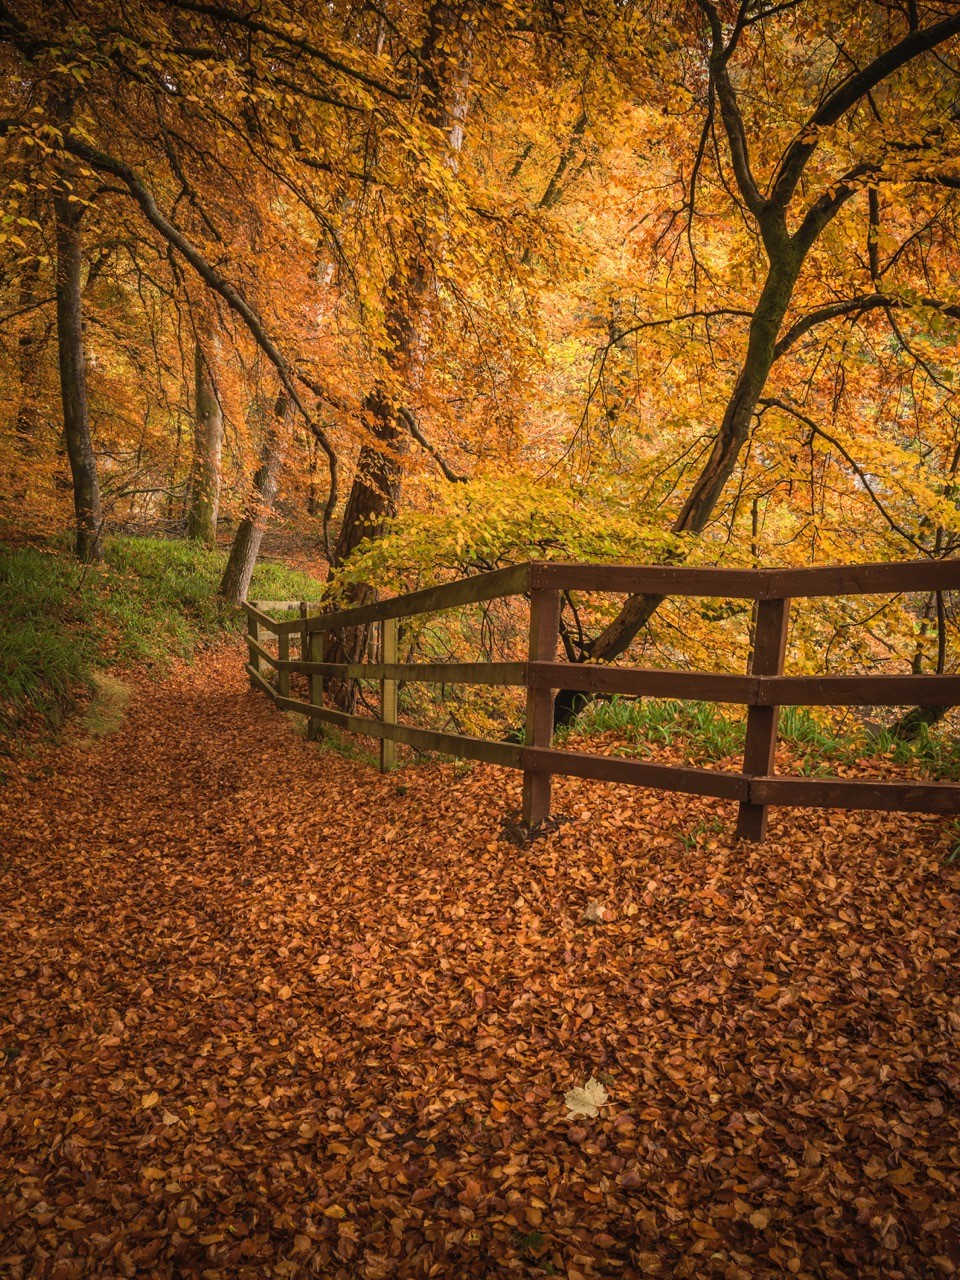 Dylan Nardini Autumn Woodlands Corra Castle Falls Of Clyde